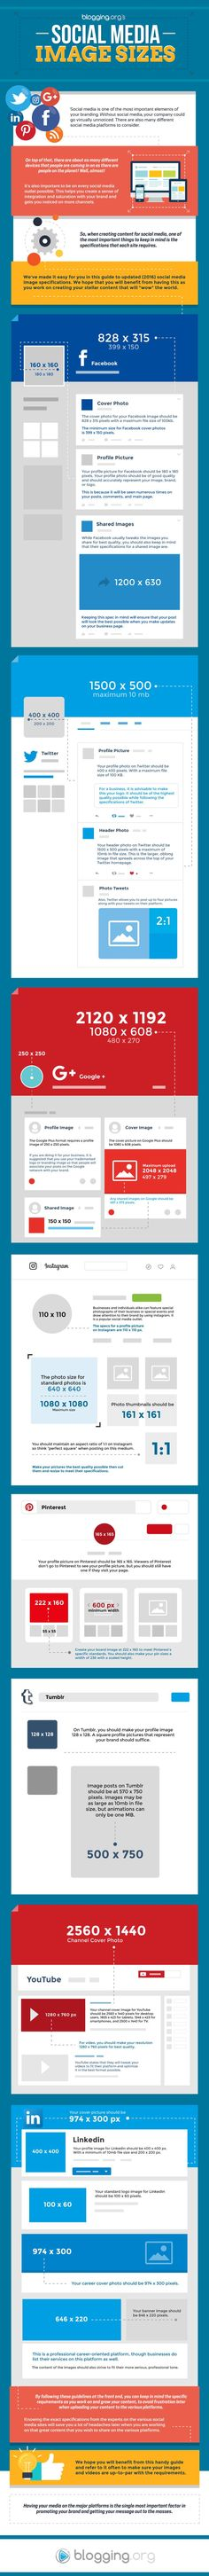 awesome Social Media Image Guide Blogging HD...